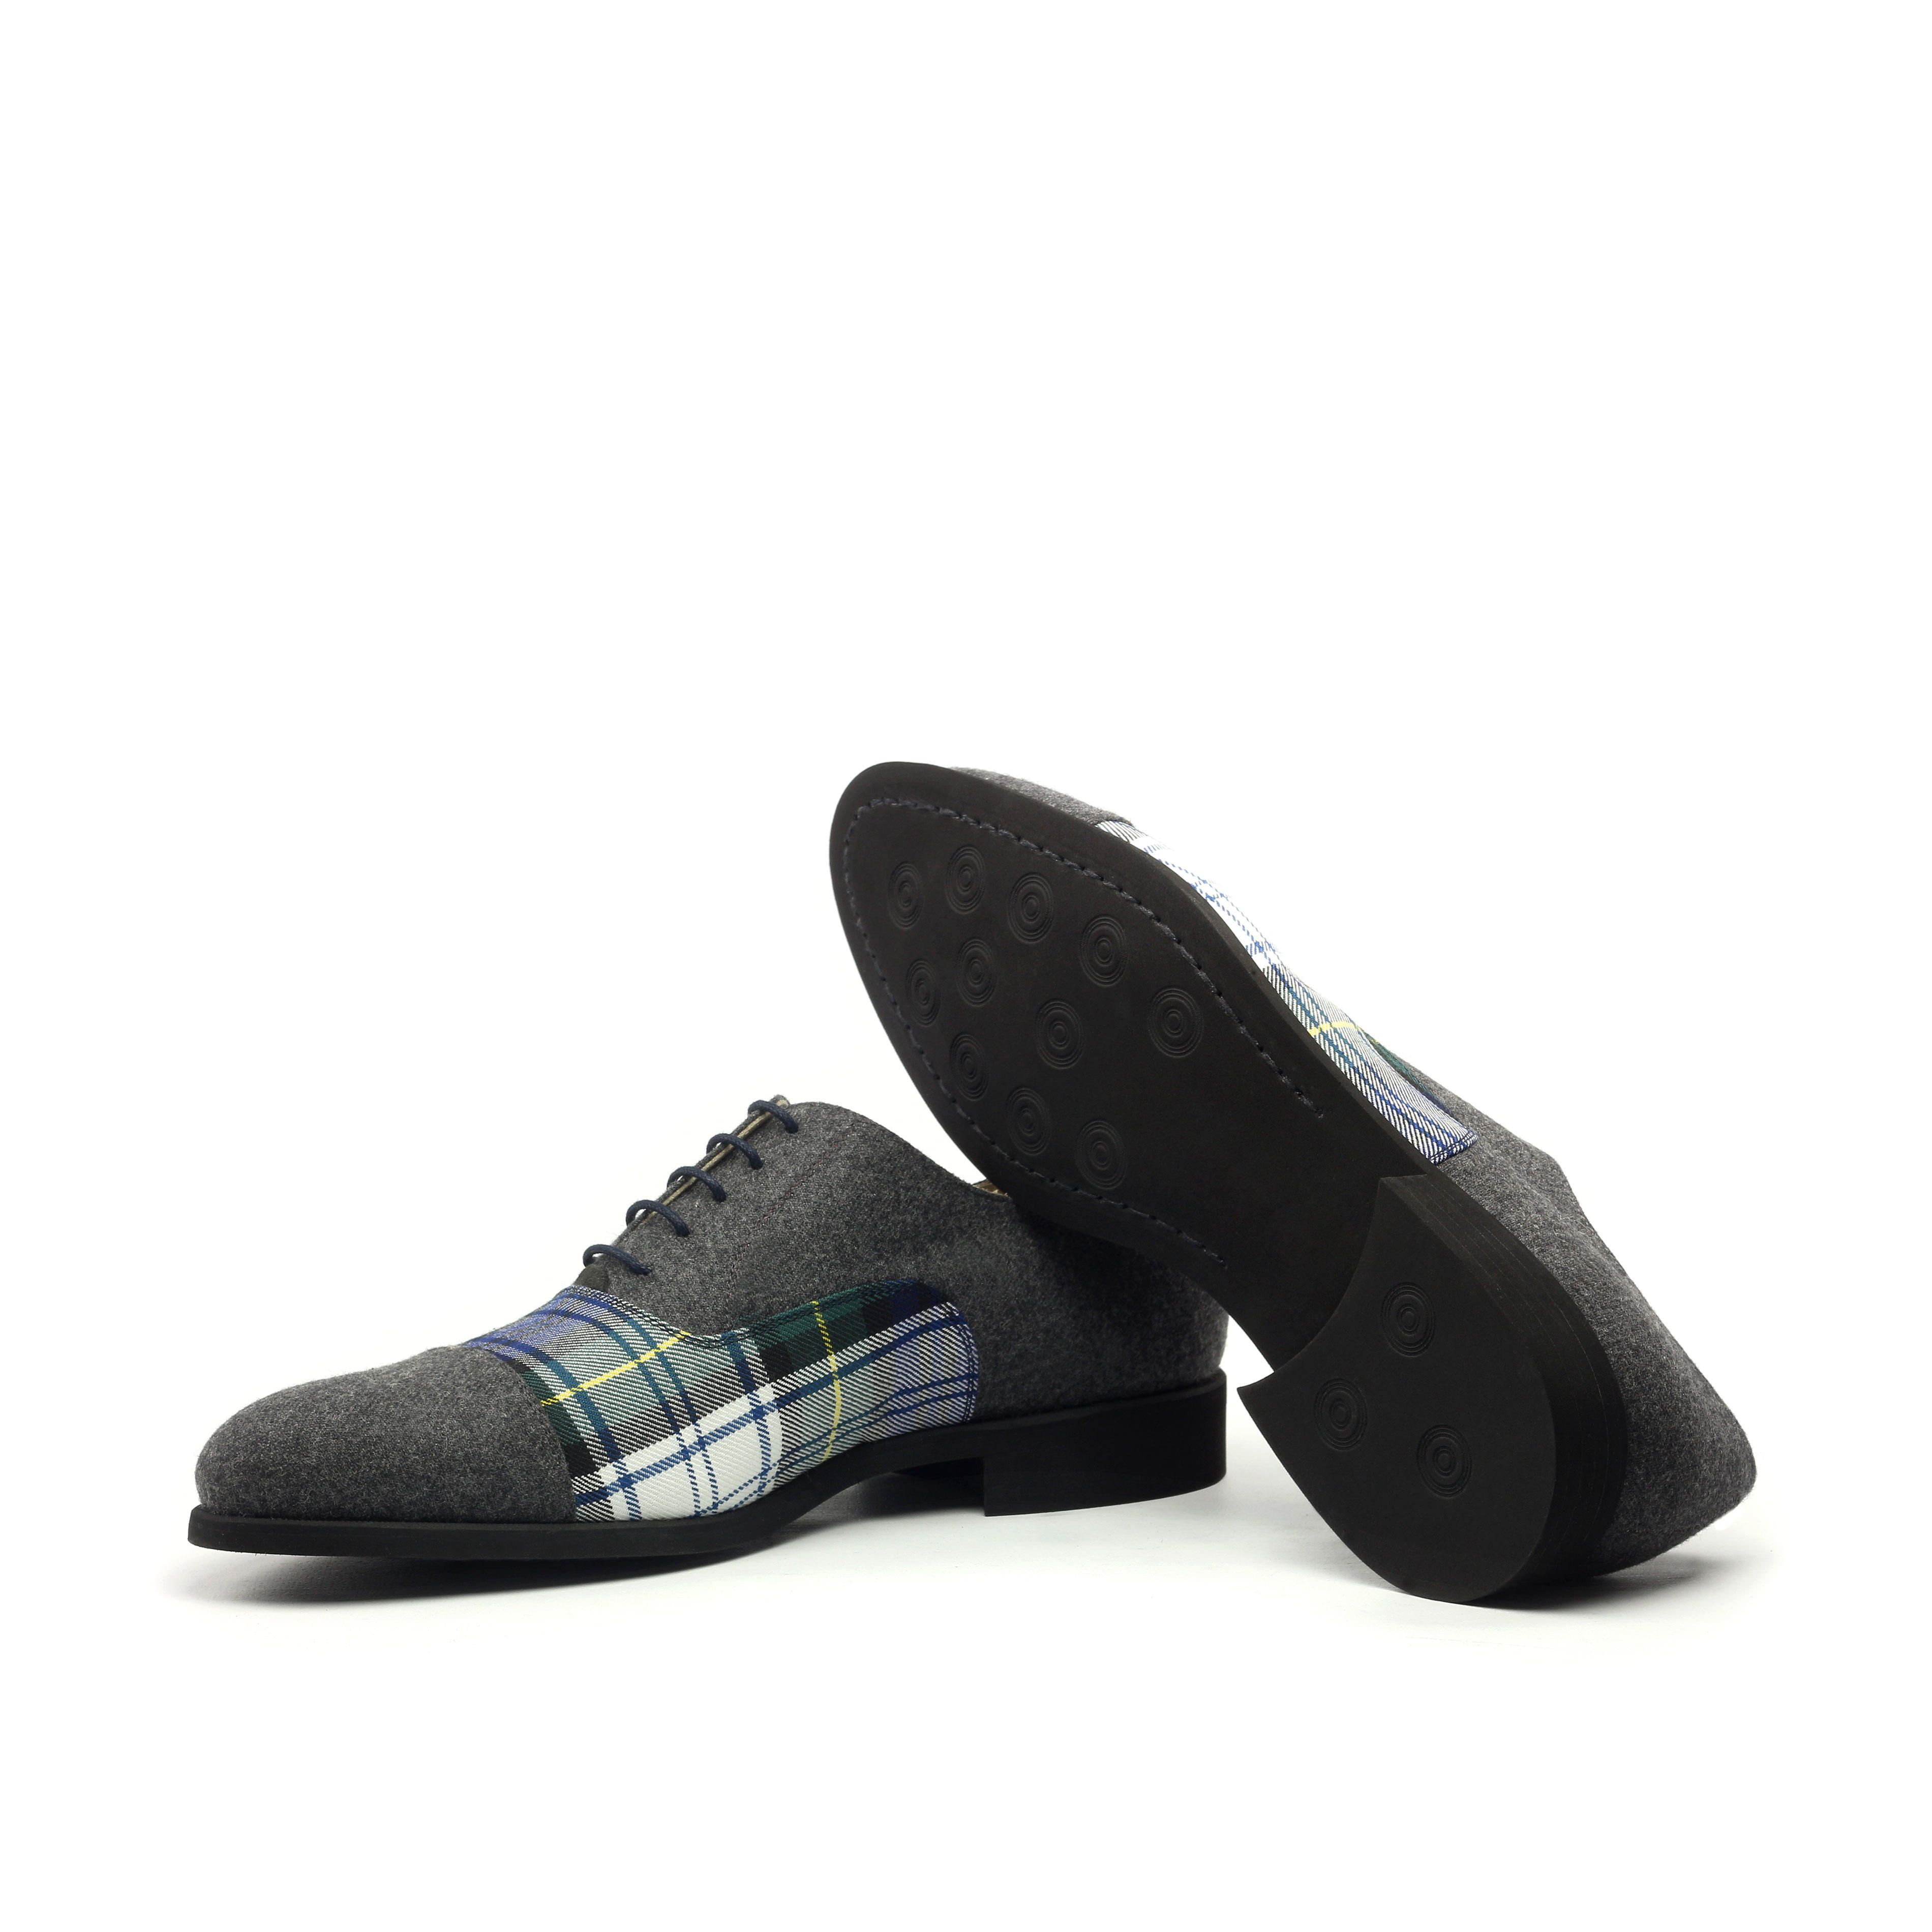 MANOR OF LONDON 'The Oxford' Grey Flannel & Tartan Shoe Luxury Custom Initials Monogrammed Bottom Side View